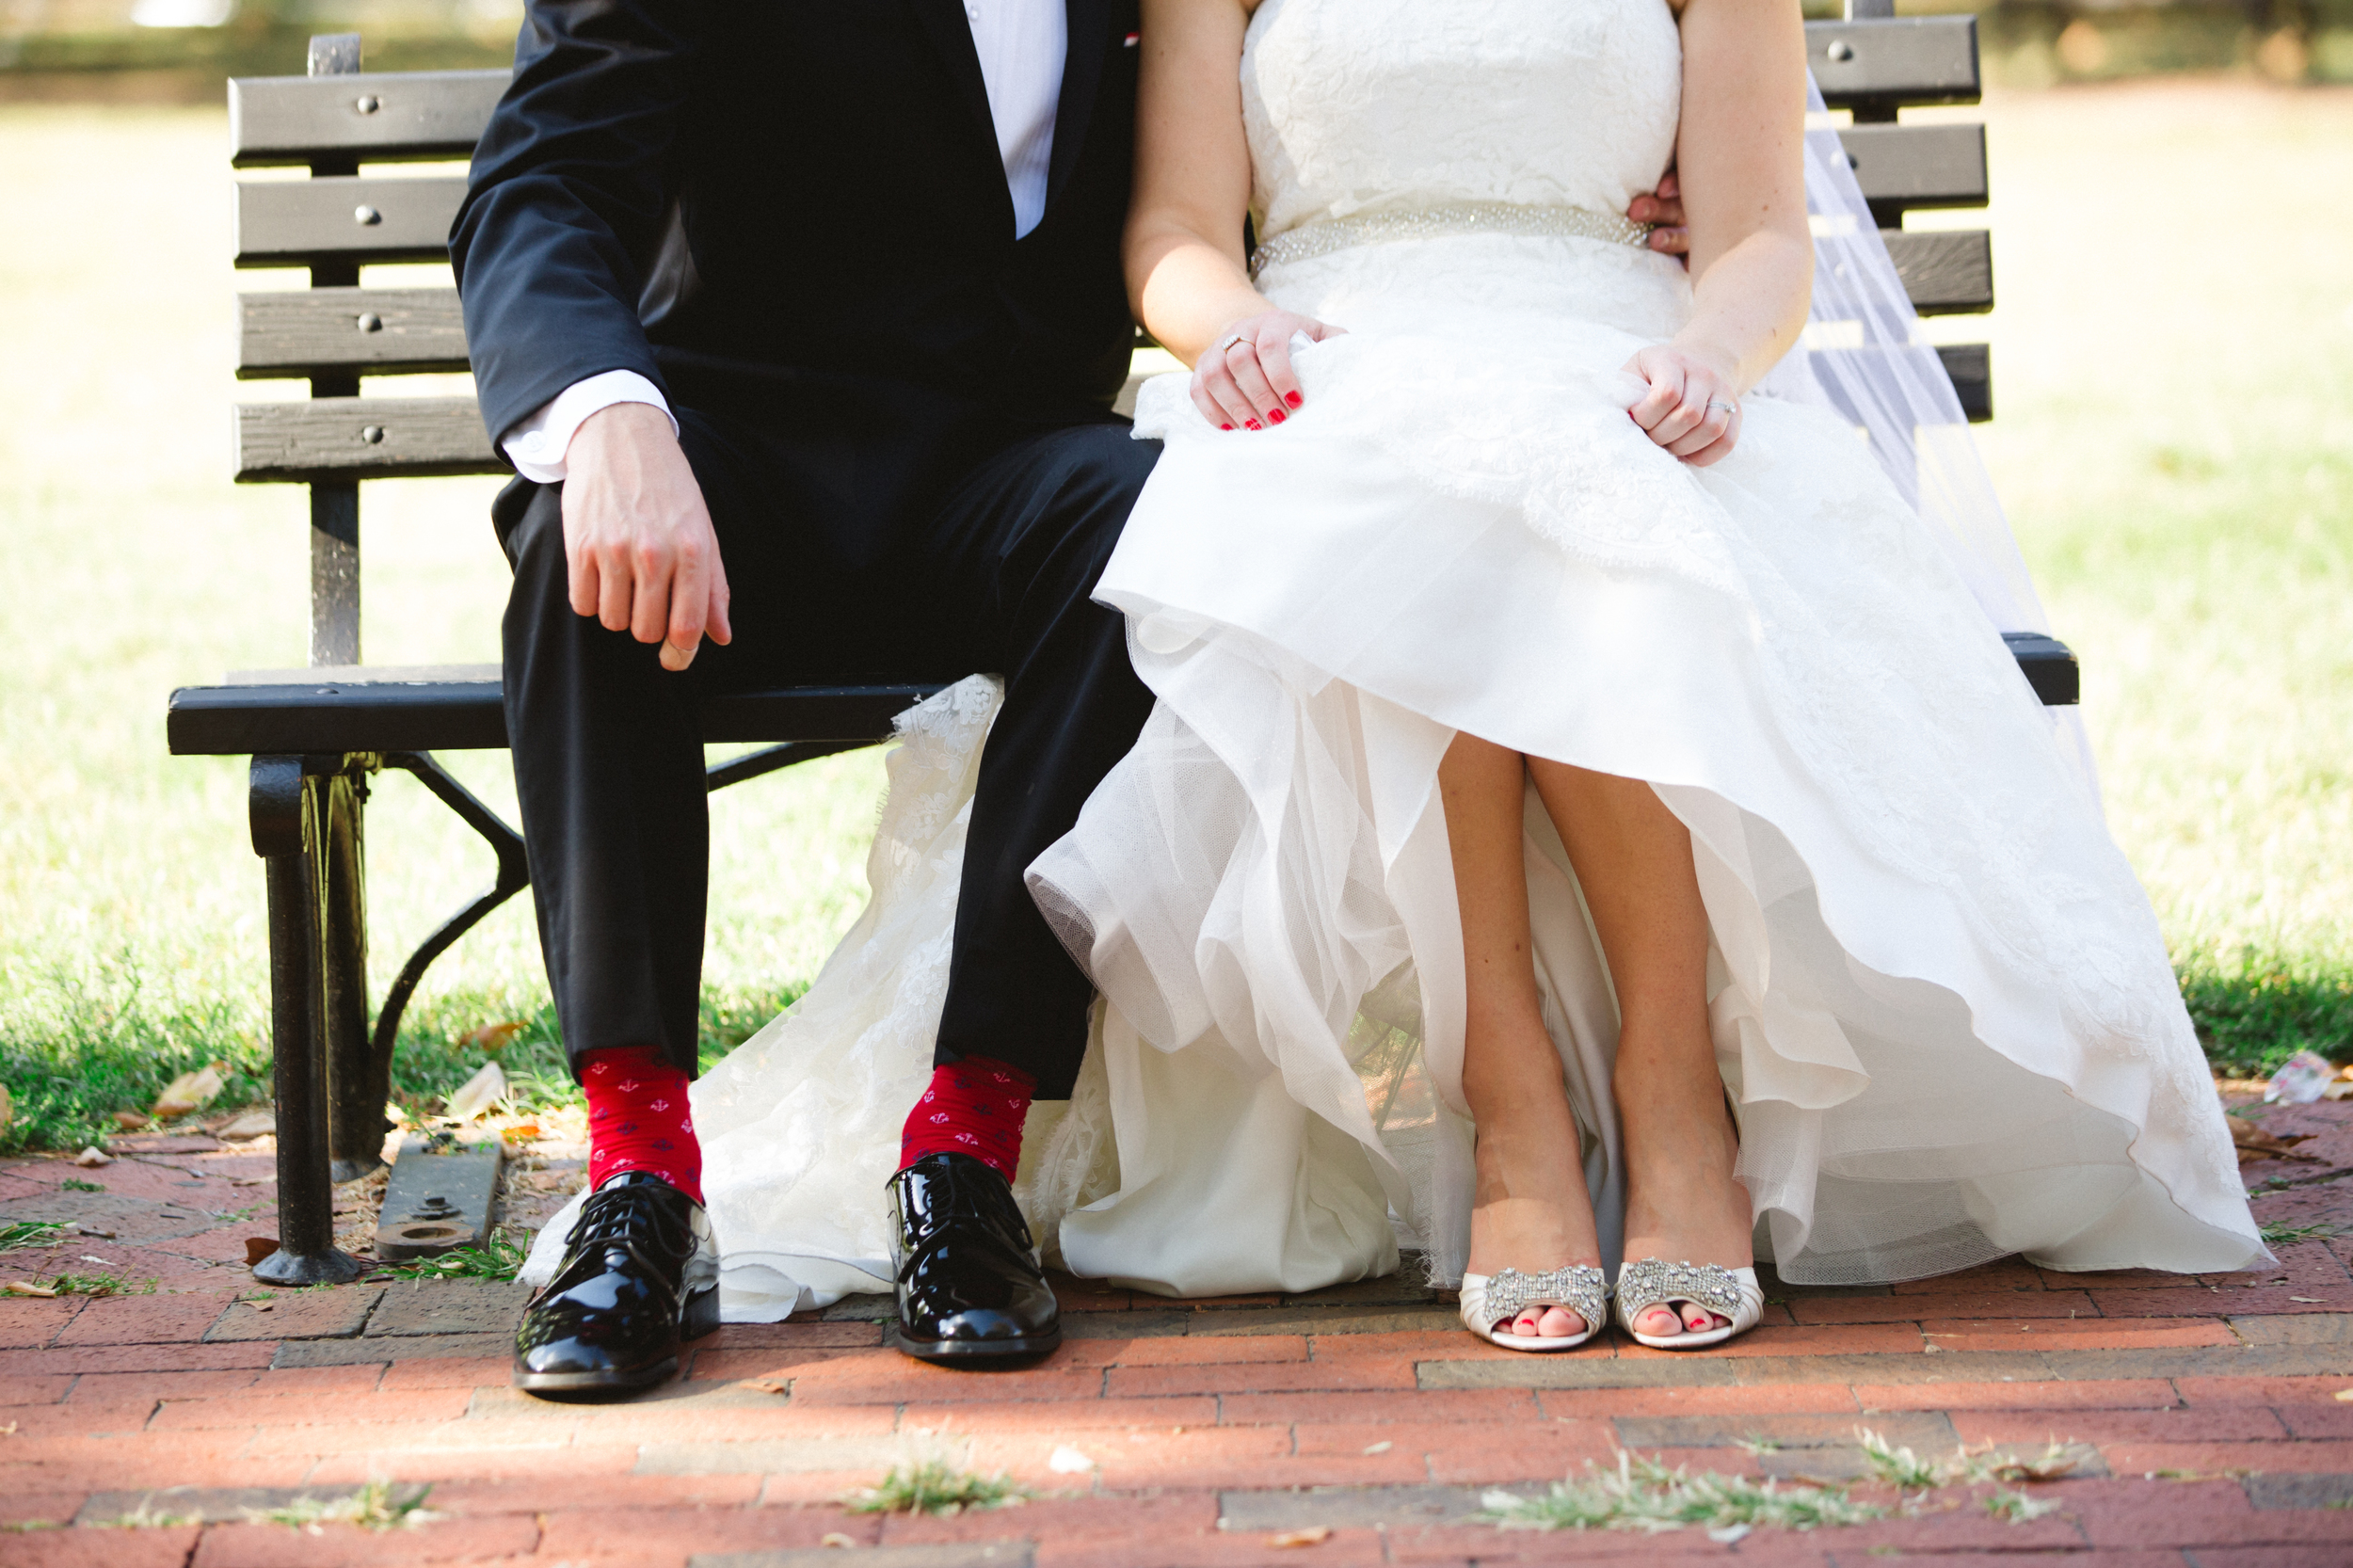 Vness_Photography_Wedding_Photographer_Washington-DC_Fish_Wedding-549.JPG